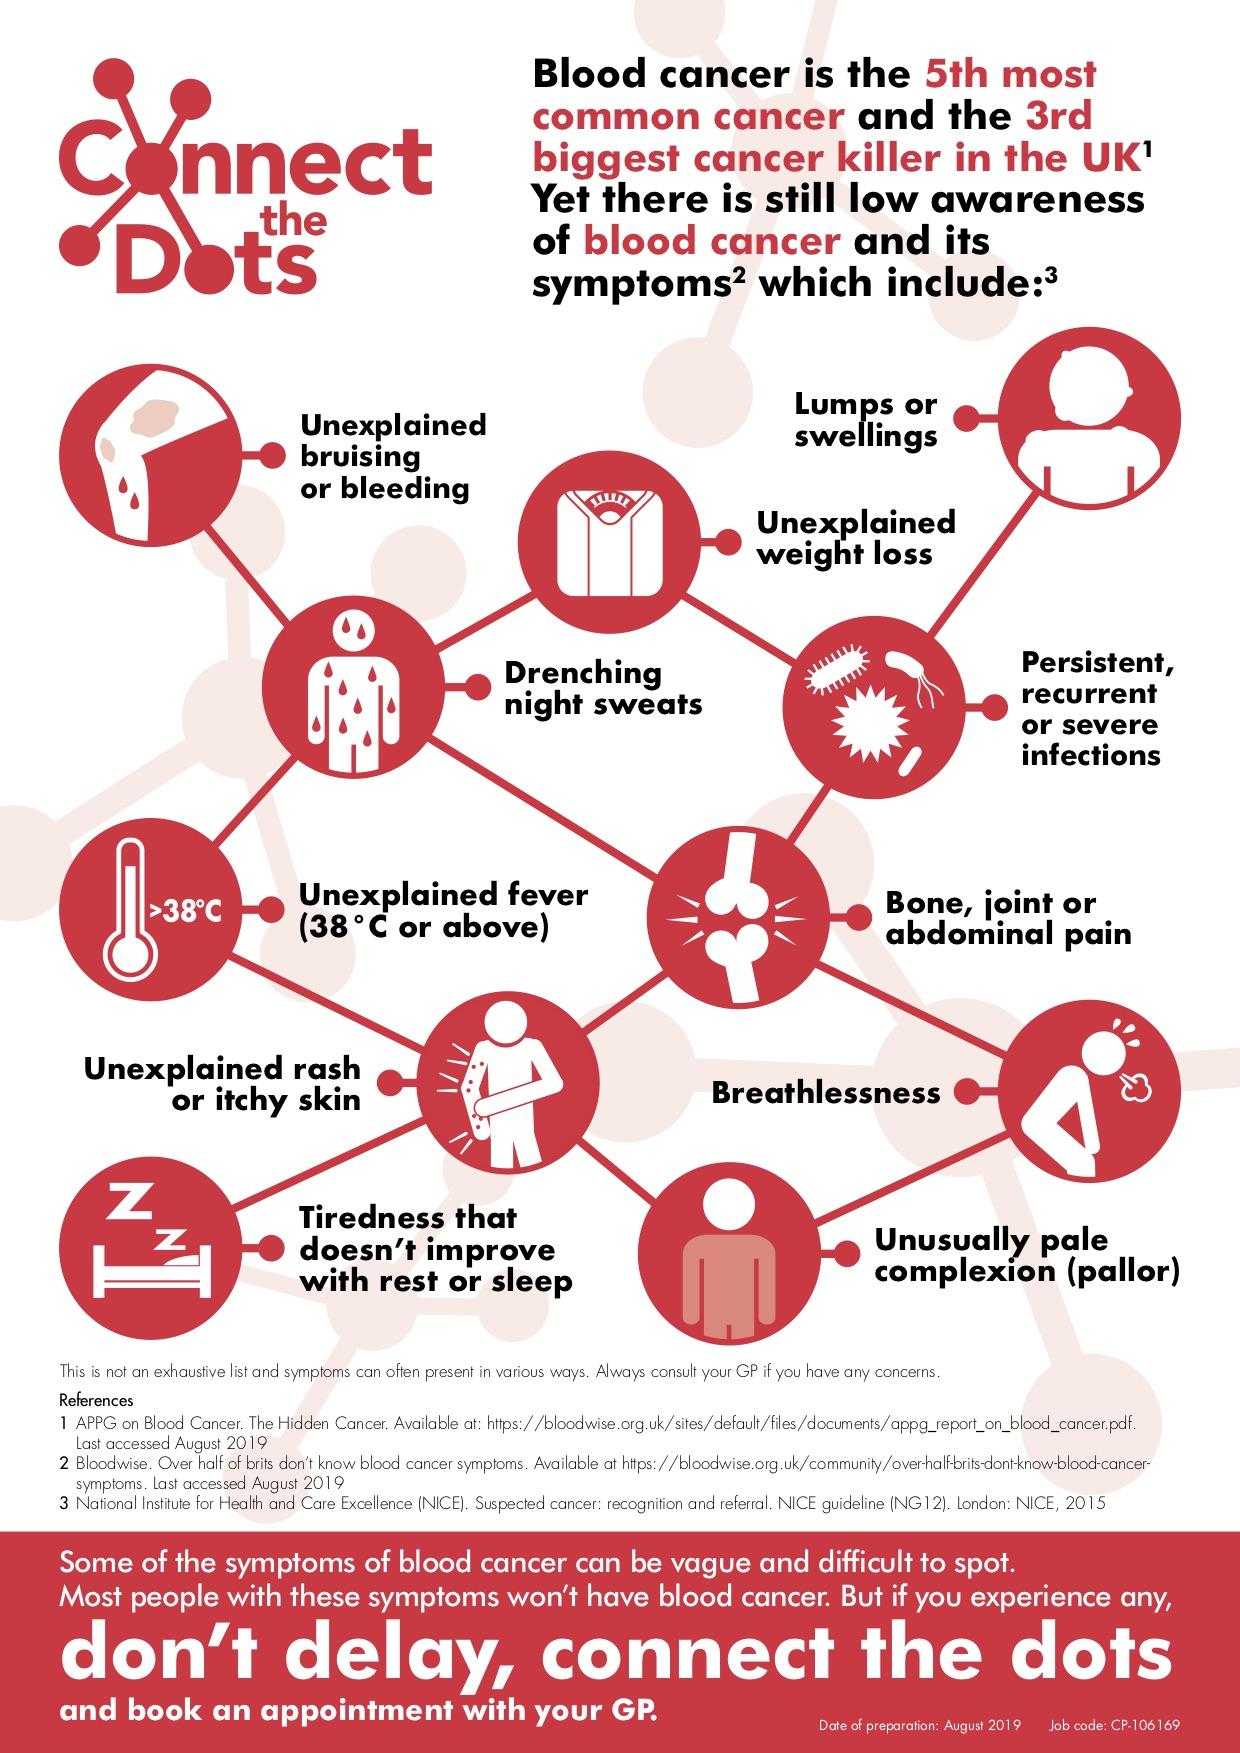 Make Blood Cancer Visible 2019 Infographic: Connecting the dots